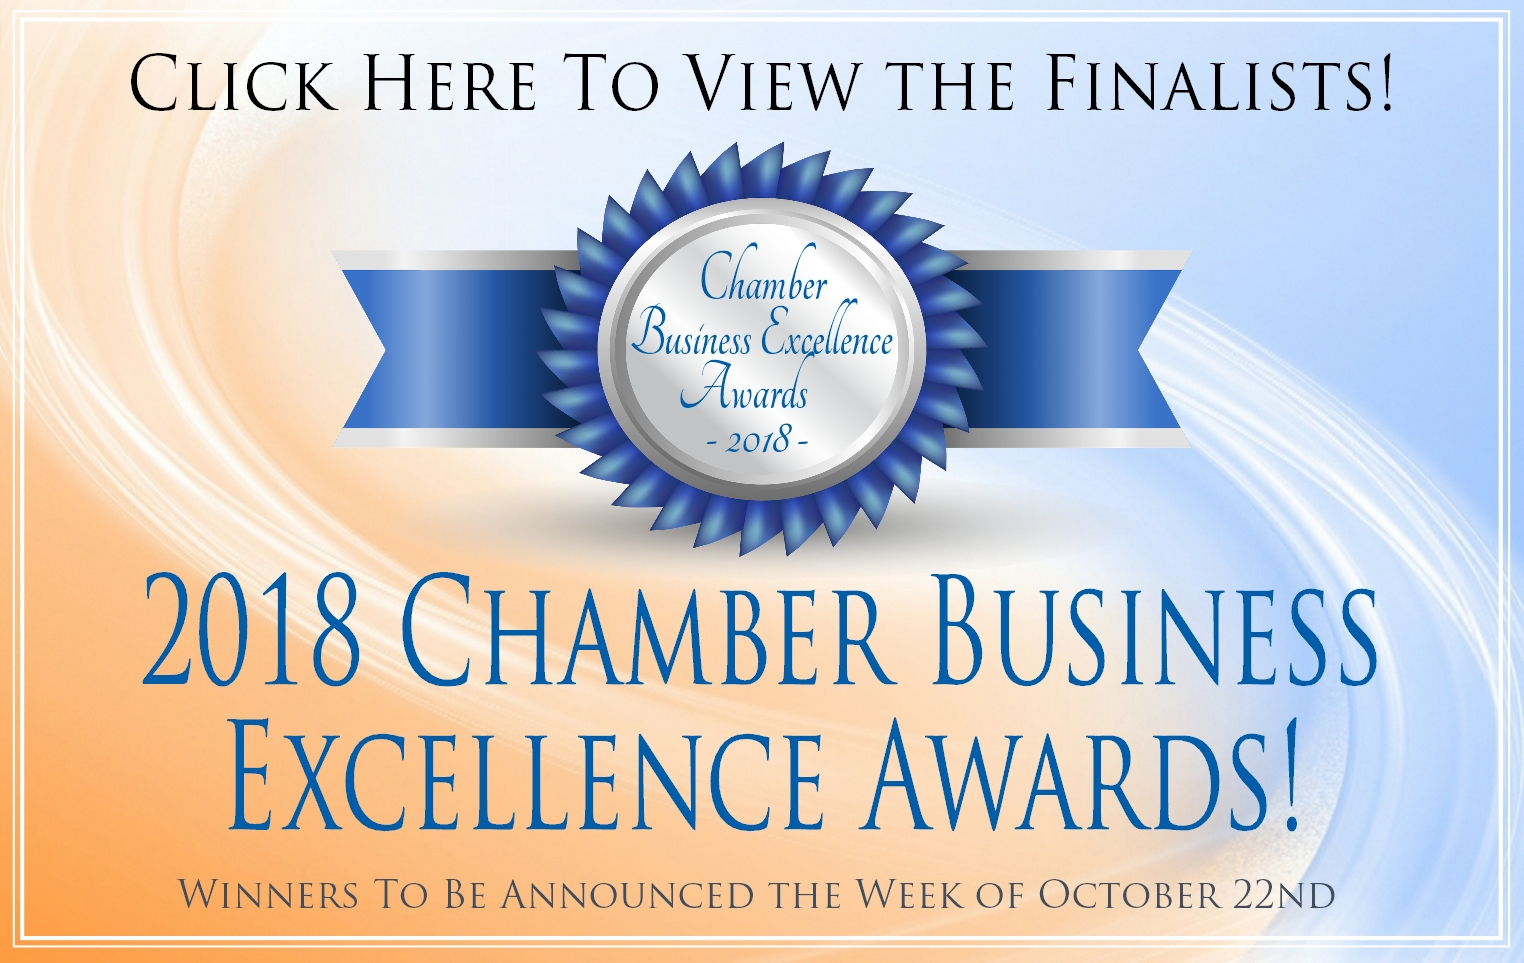 Chamber-Business-Excellence-Awards-2018---Award-Graphic.-Finalists-Website-vers.jpg